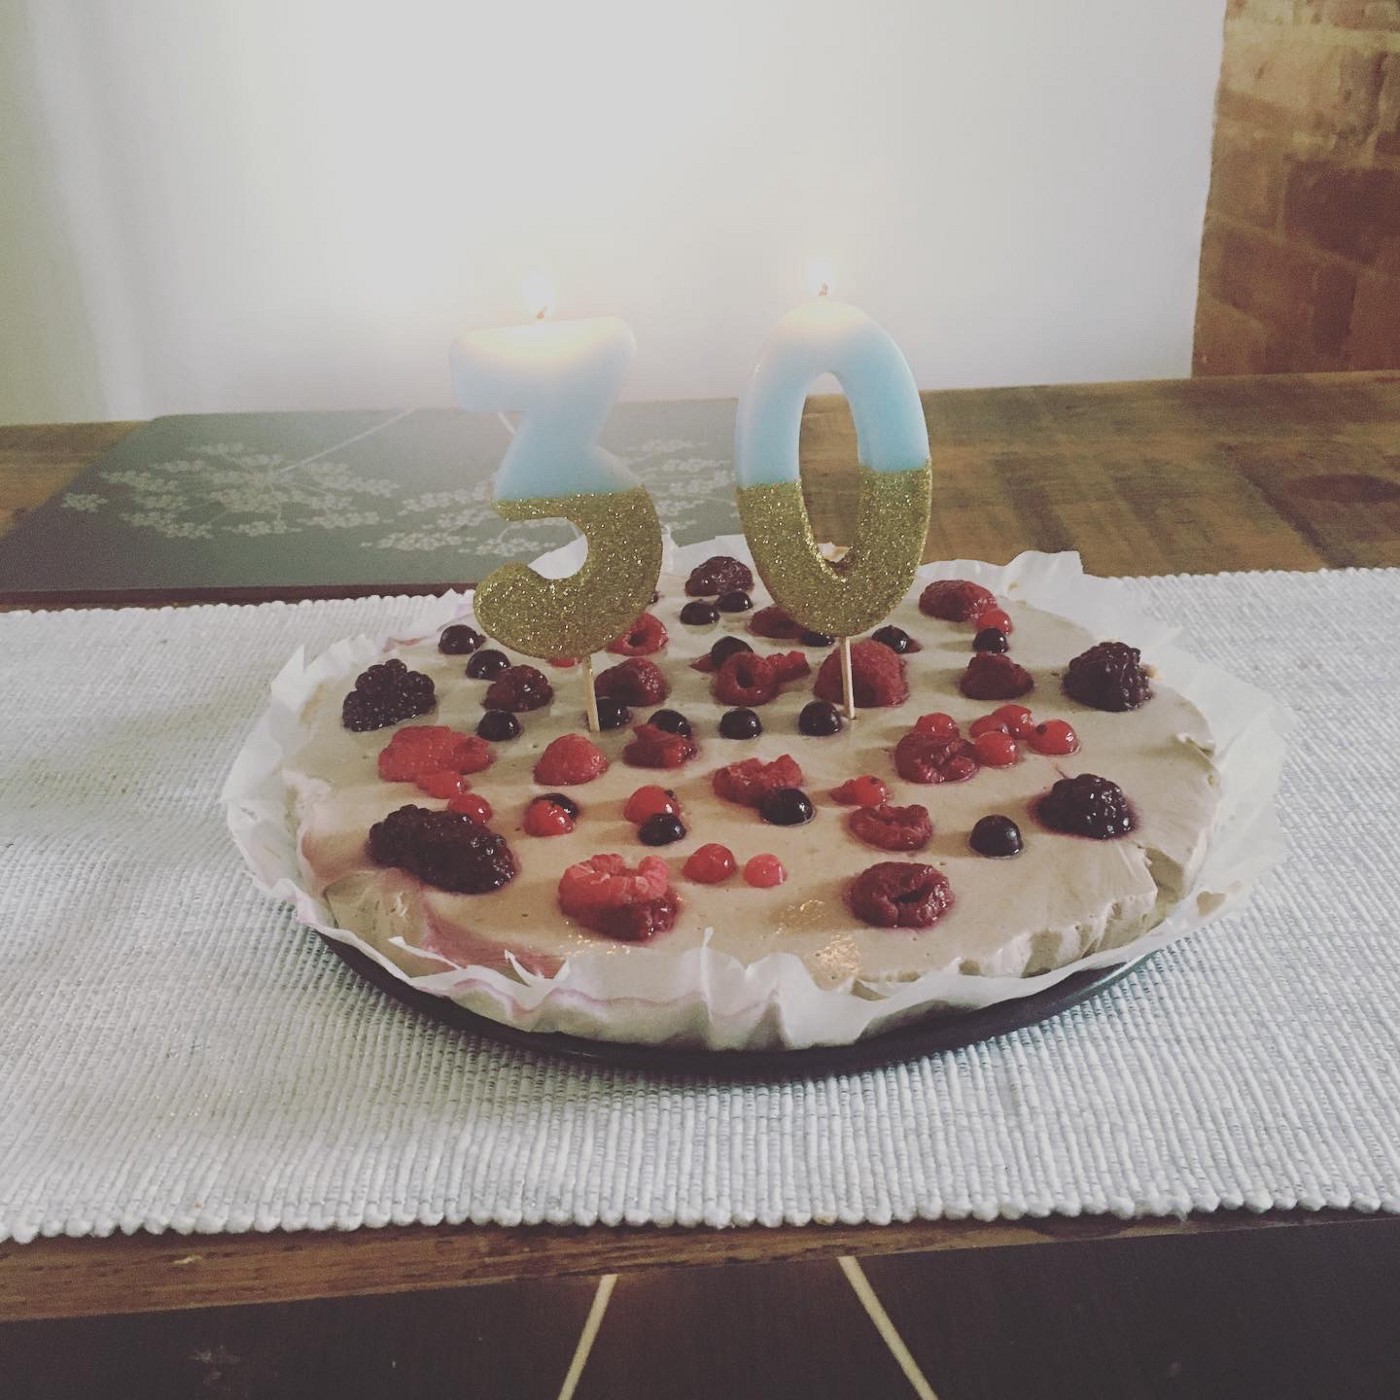 Improvised cheesecake: getting ingredients in April was a real mission